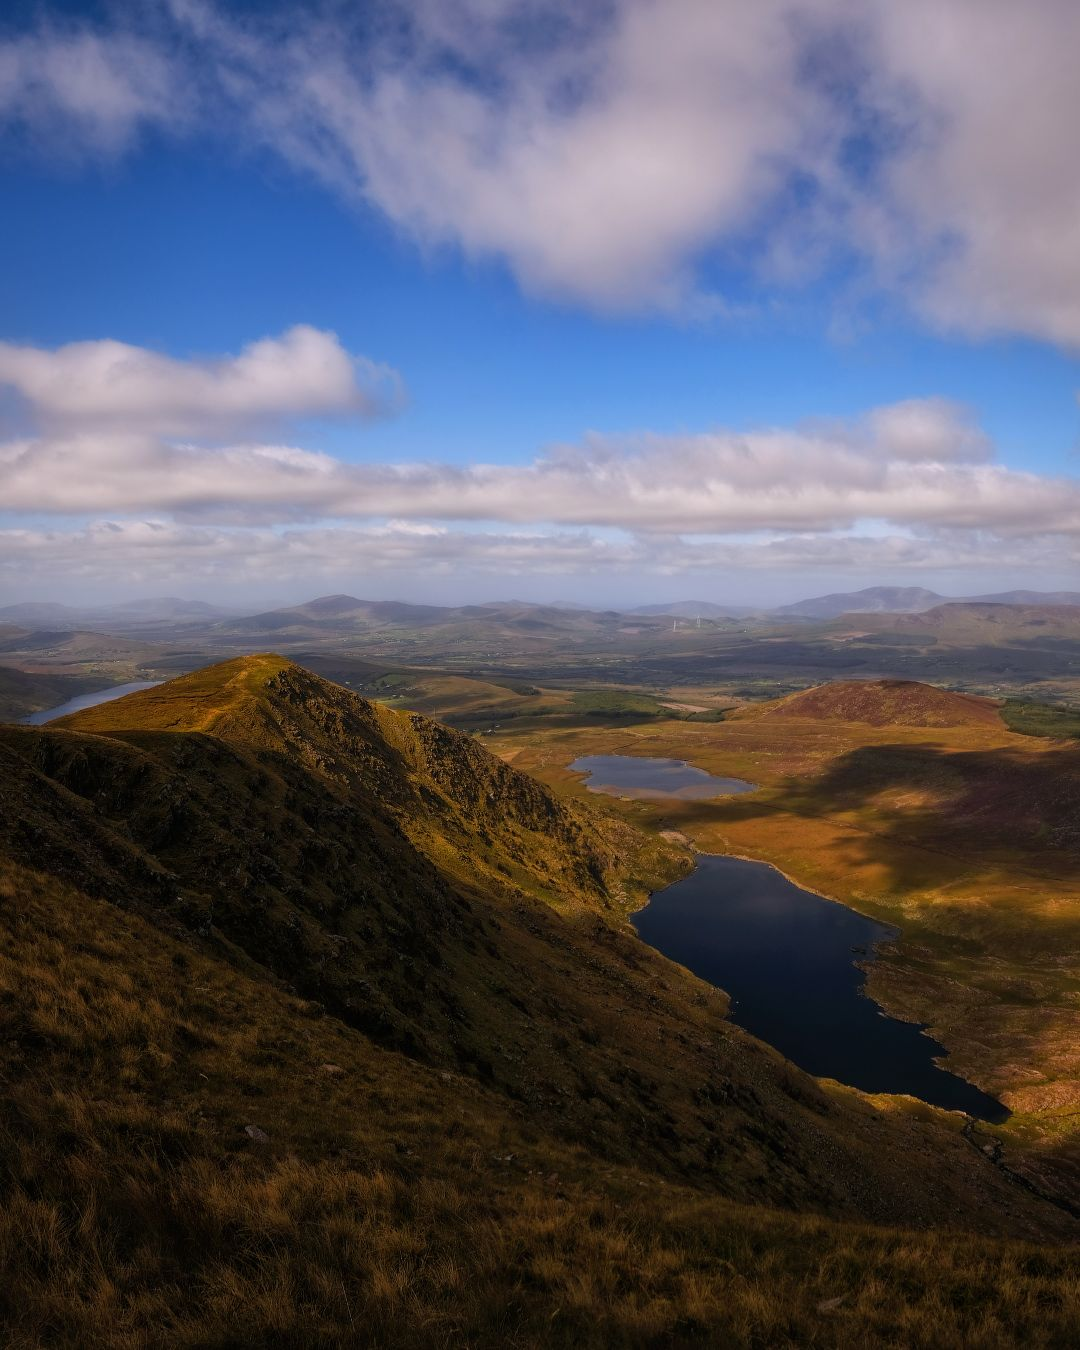 ...somewhere in Kerry... ireland kerry wild atlantic way mountains ring of nature outdoors landscape mountain scape ridge valley lake lough scenic scenery picturesque awe wonderful clouds sky cloudscape europe shades shadows